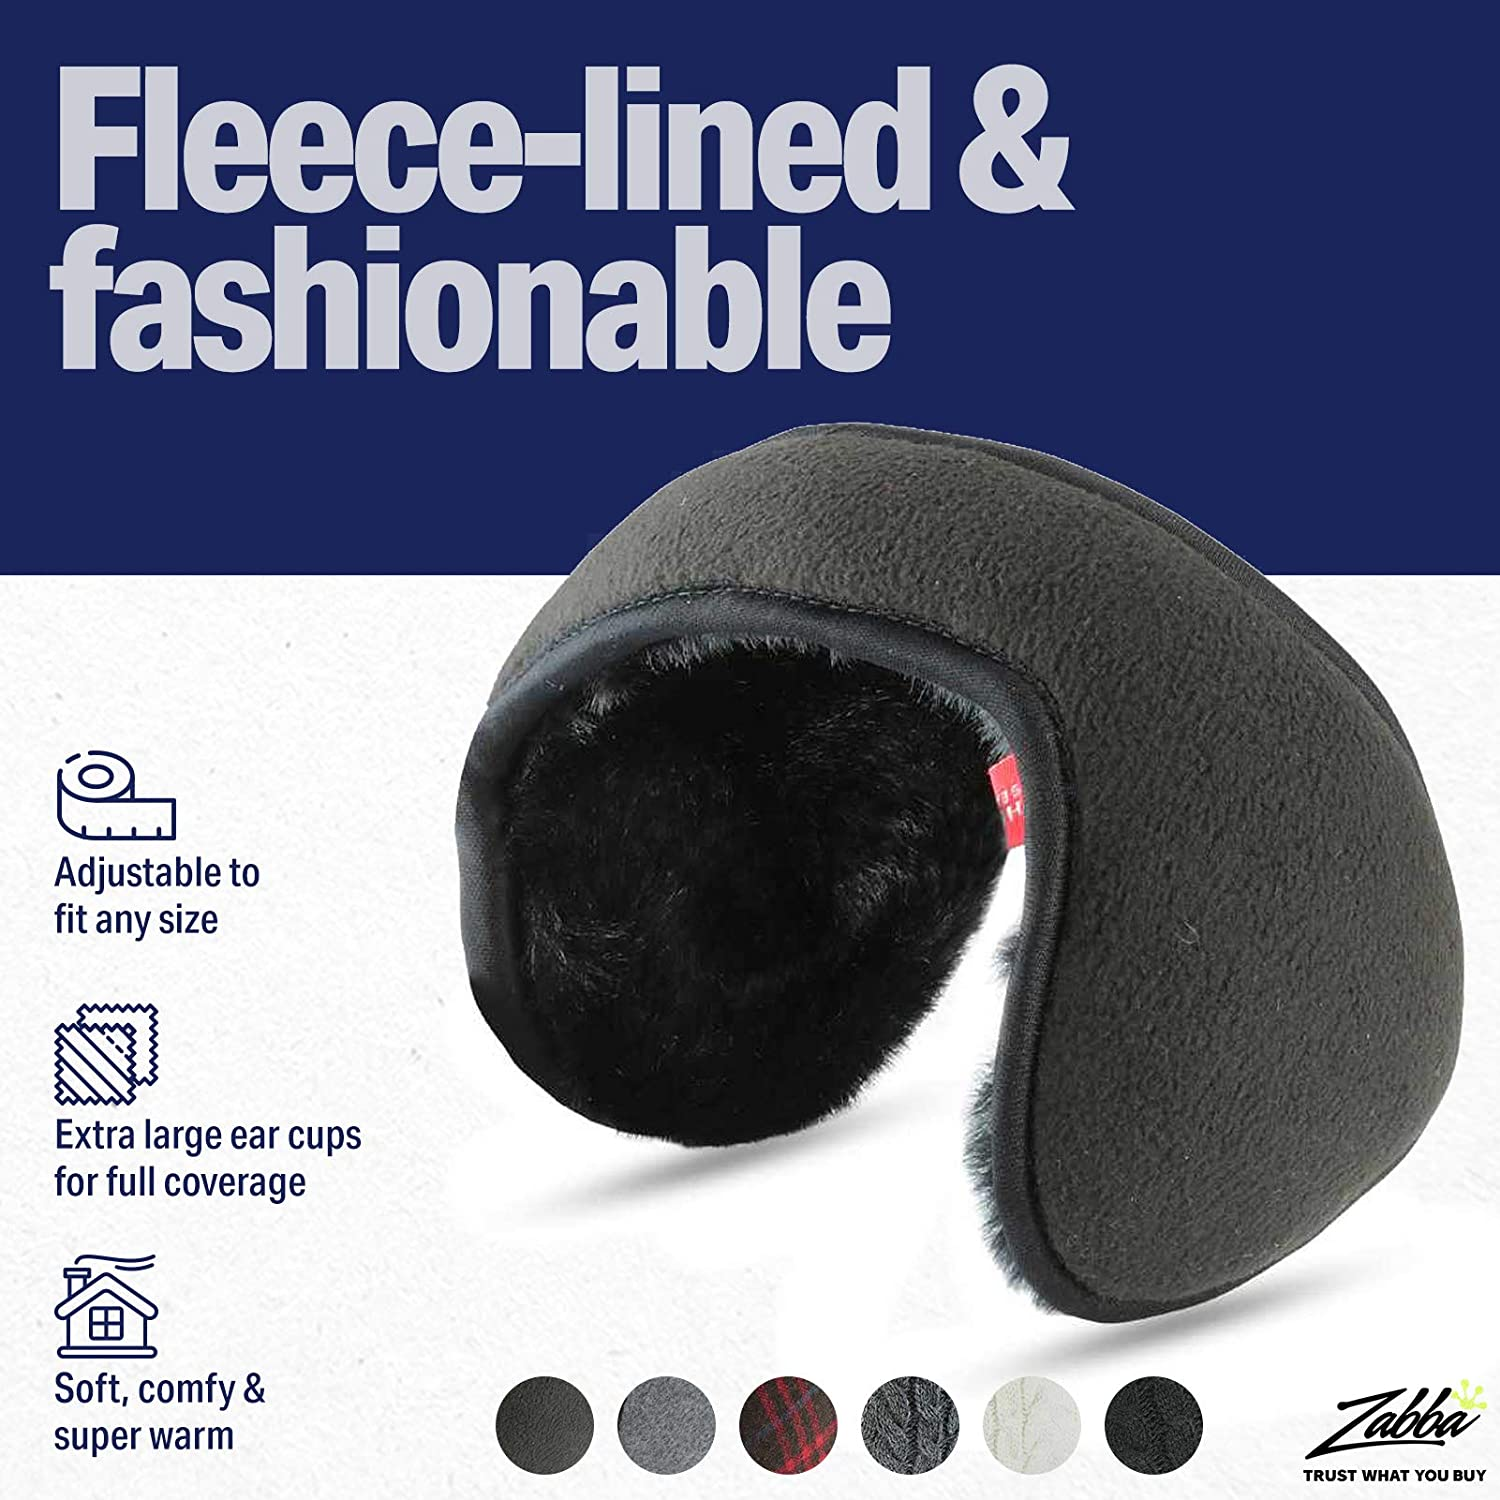 Warm /& Cozy Comfy Fashionable Luther Pike Seattle Unisex Winter Ear Muffs